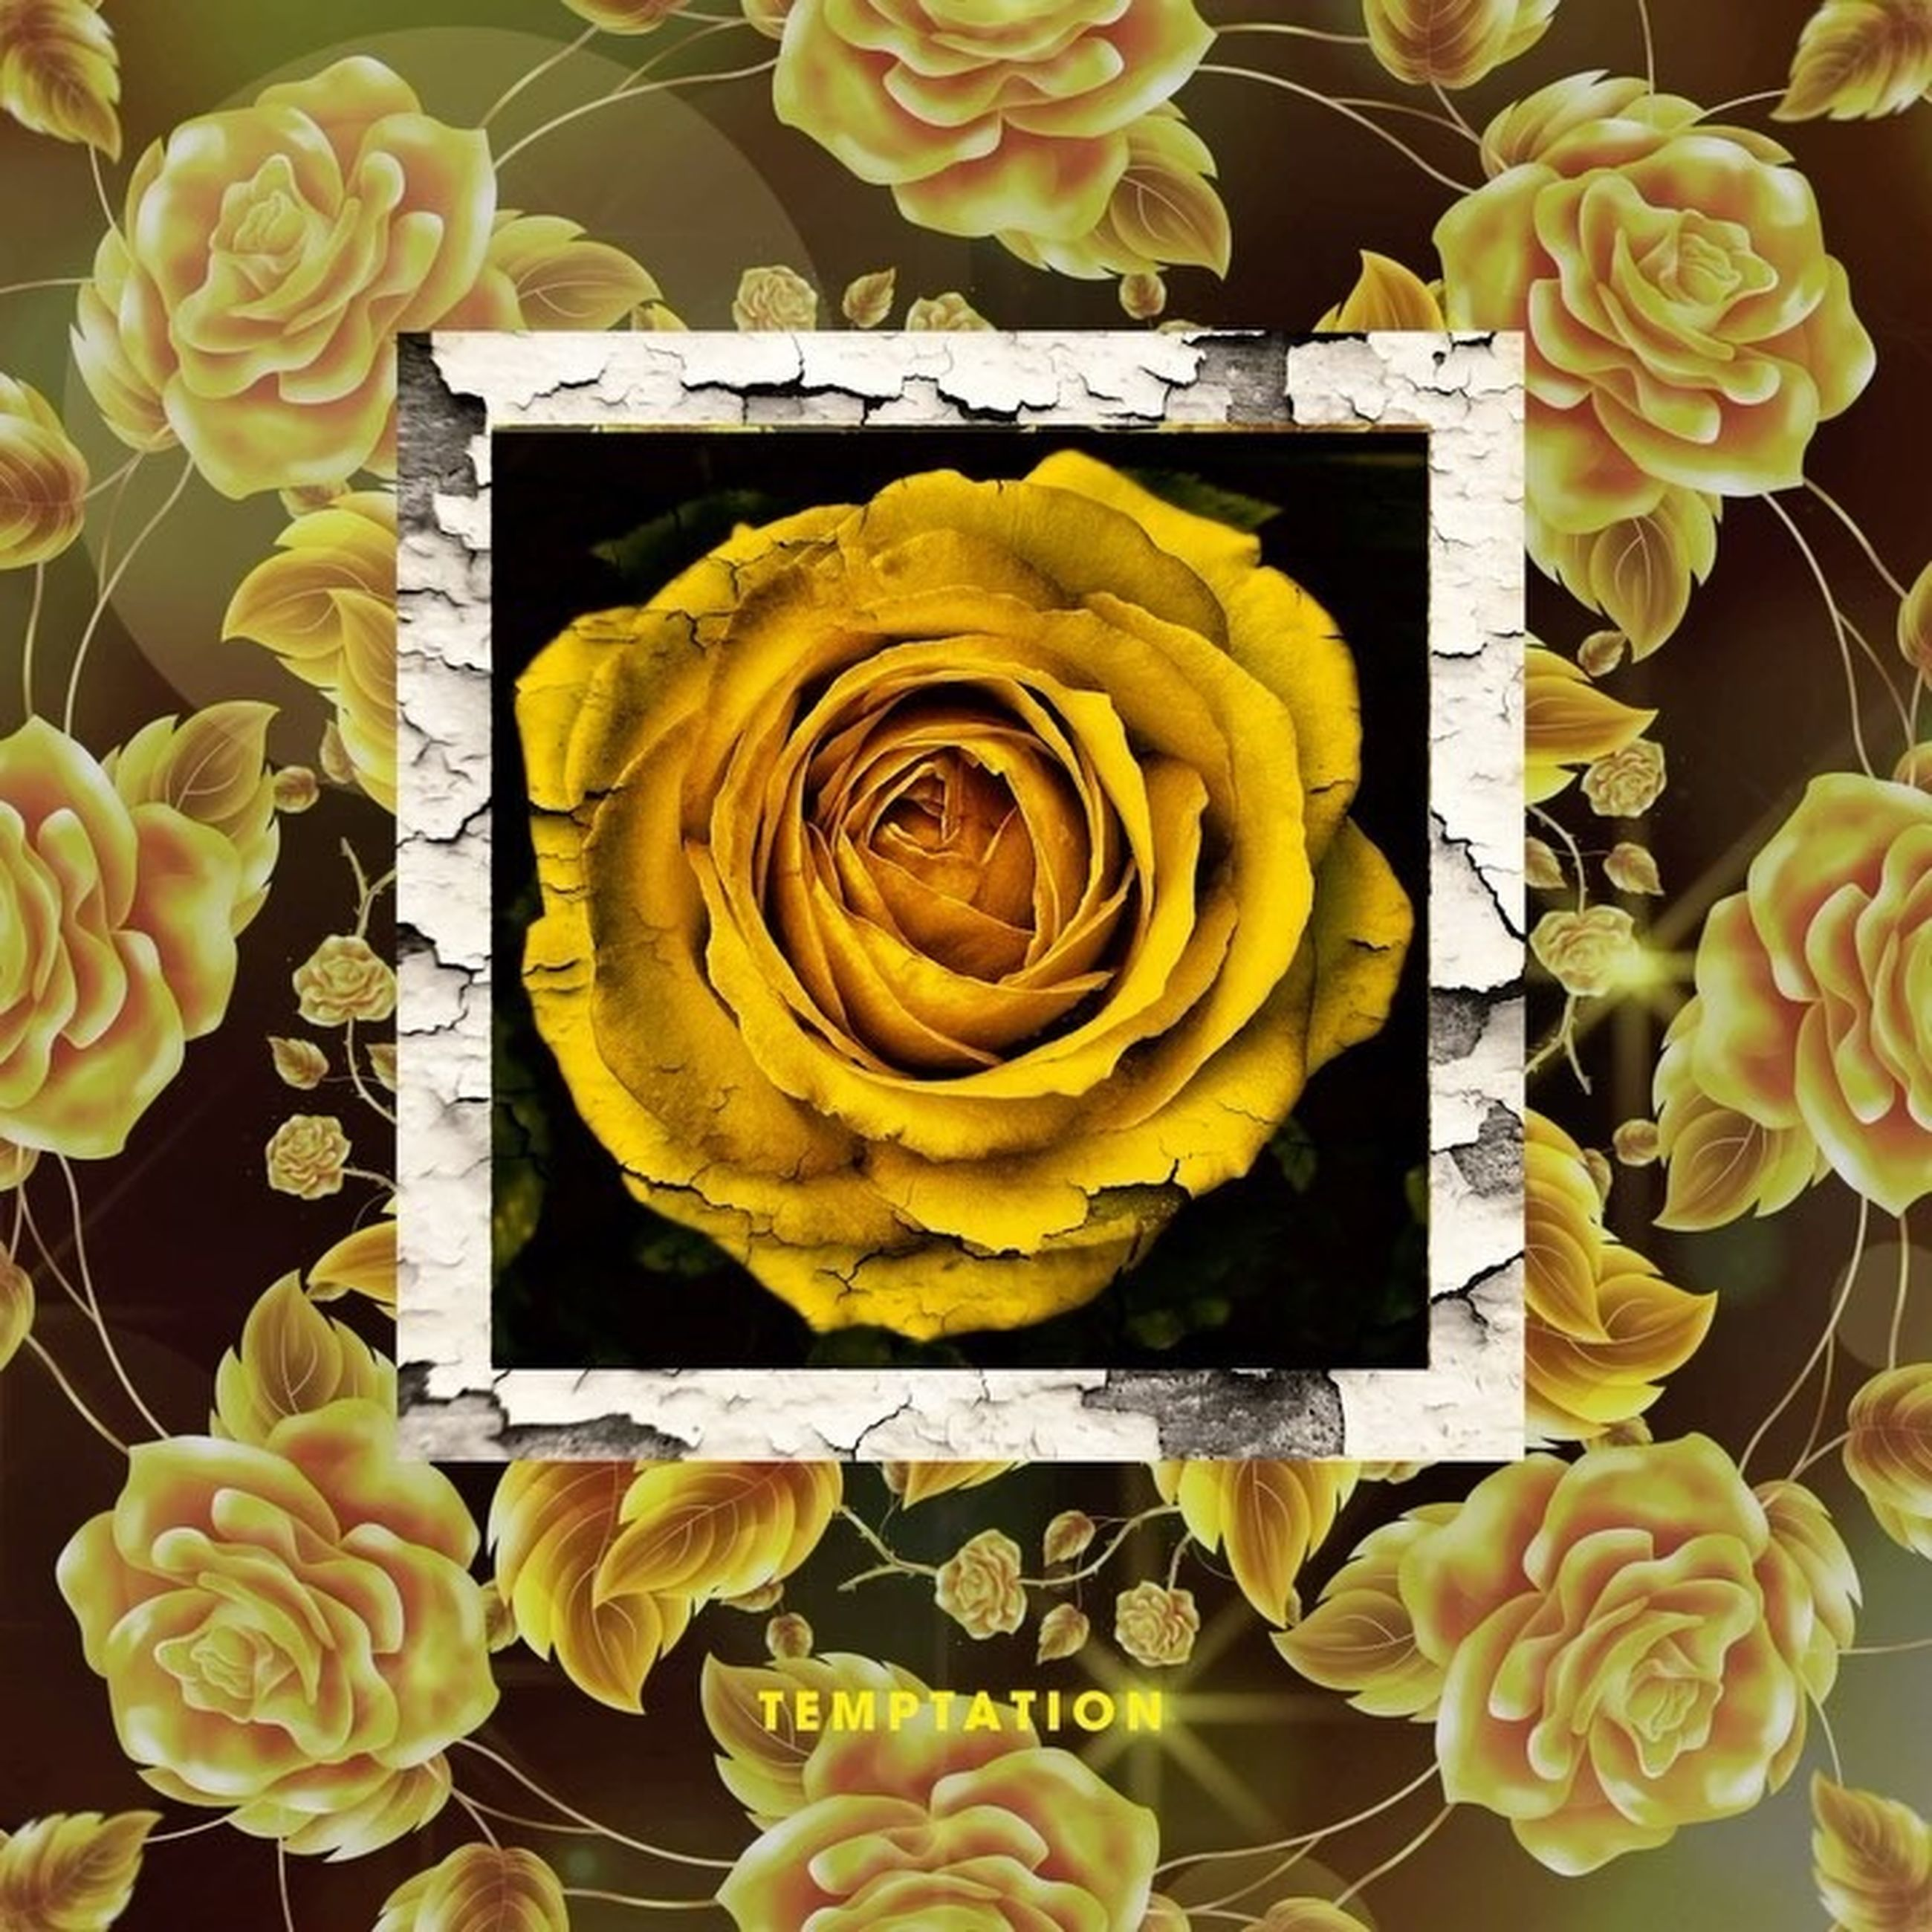 flower, flowering plant, plant, beauty in nature, rose, freshness, petal, rose - flower, vulnerability, flower head, inflorescence, fragility, close-up, yellow, flower arrangement, nature, bouquet, no people, directly above, indoors, digital composite